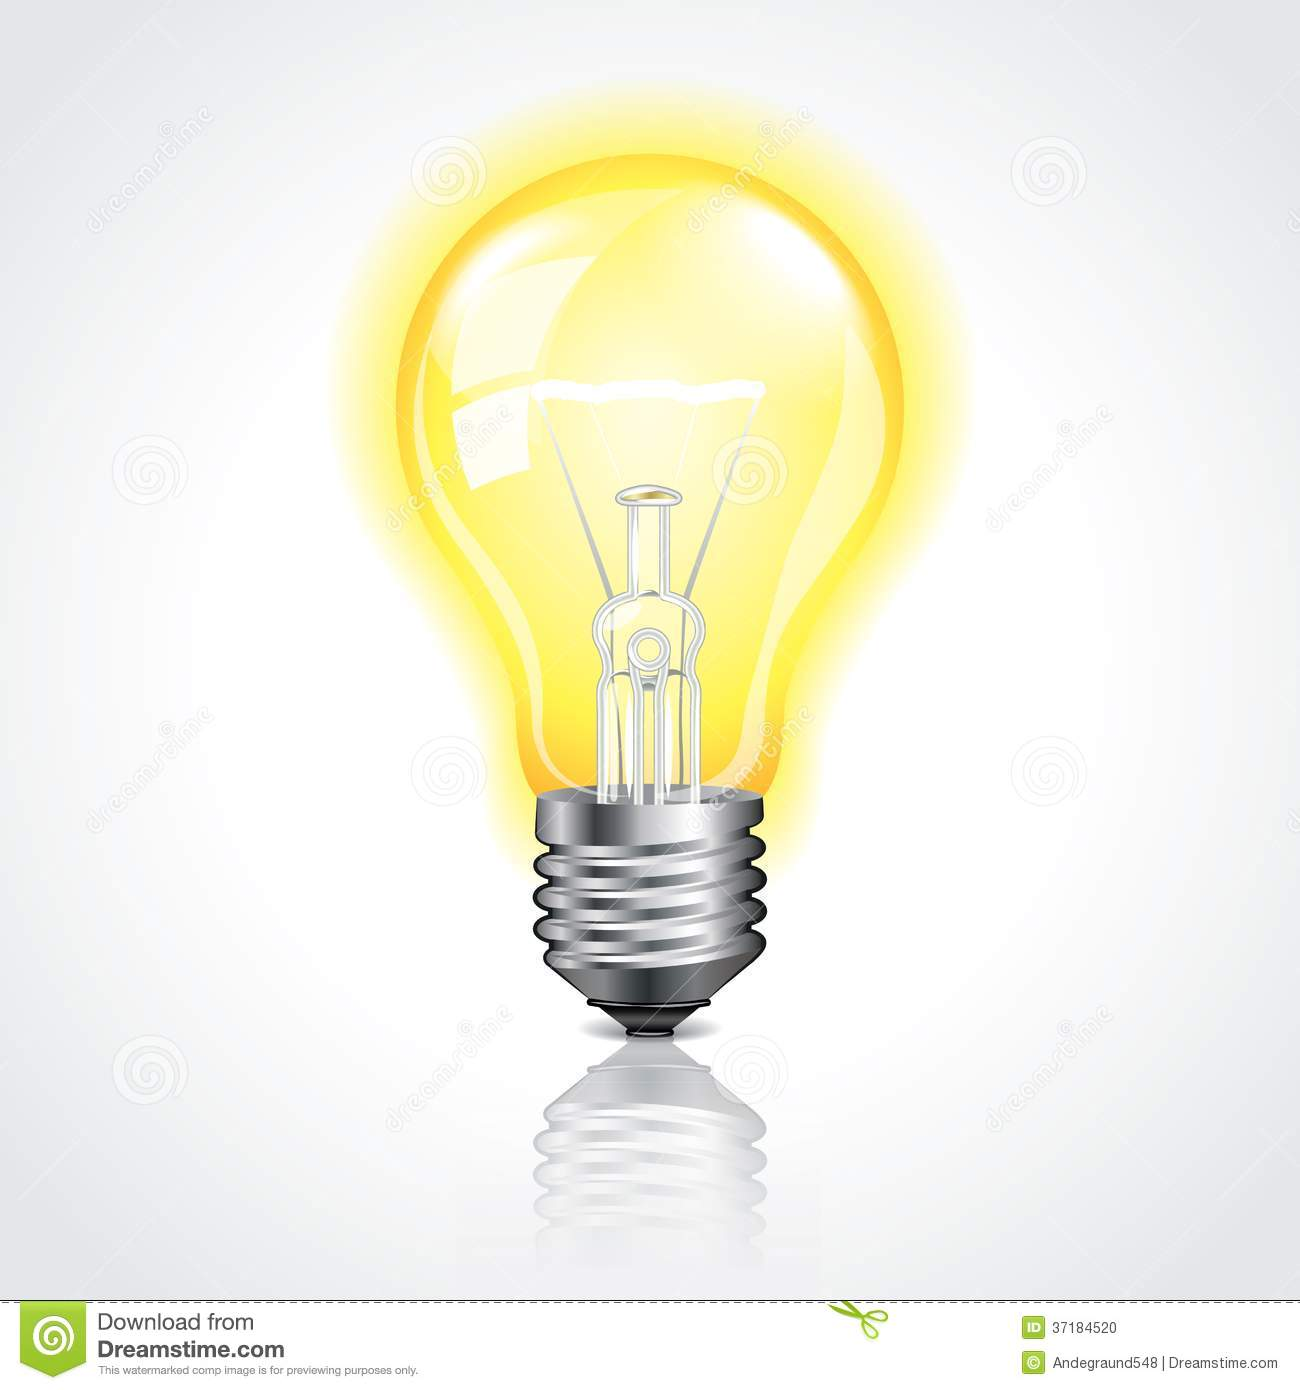 Glowing Bulb Animation Glowing Light Bulb Vector Illustration Stock Photo Image